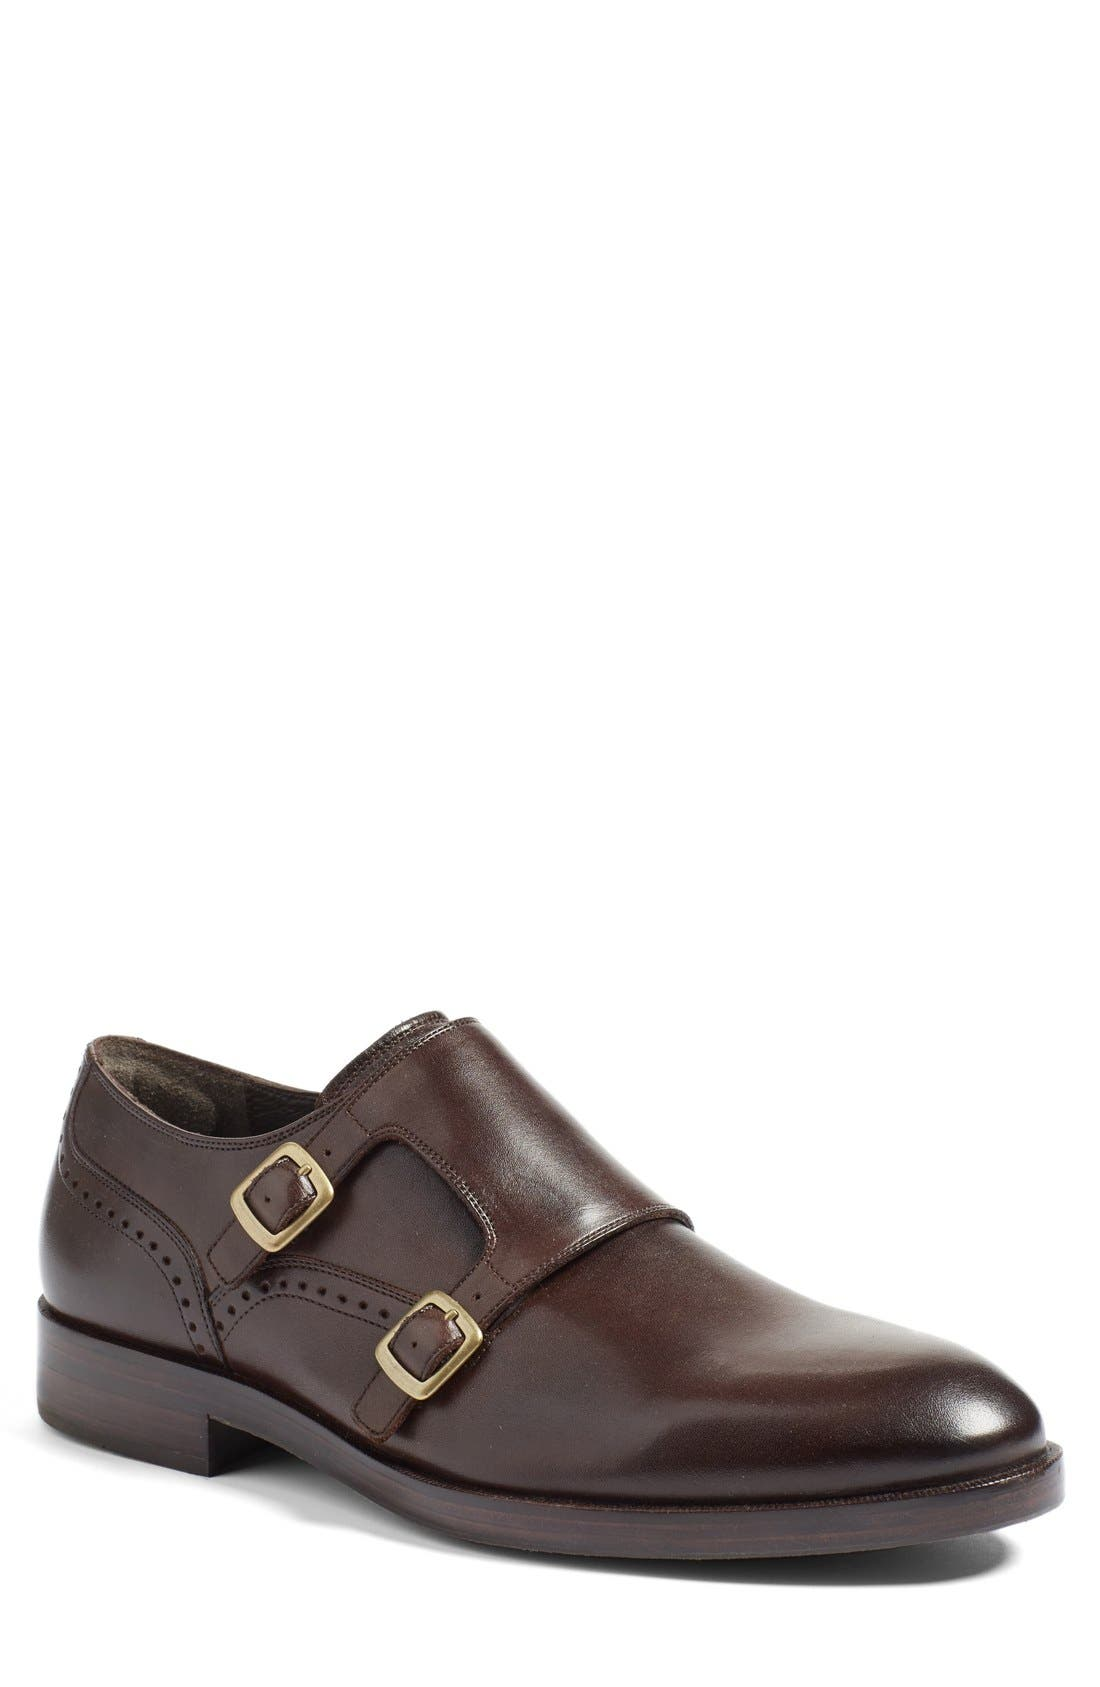 Alternate Image 1 Selected - Cole Haan 'Harrison' Double Monk Strap Shoe (Men)